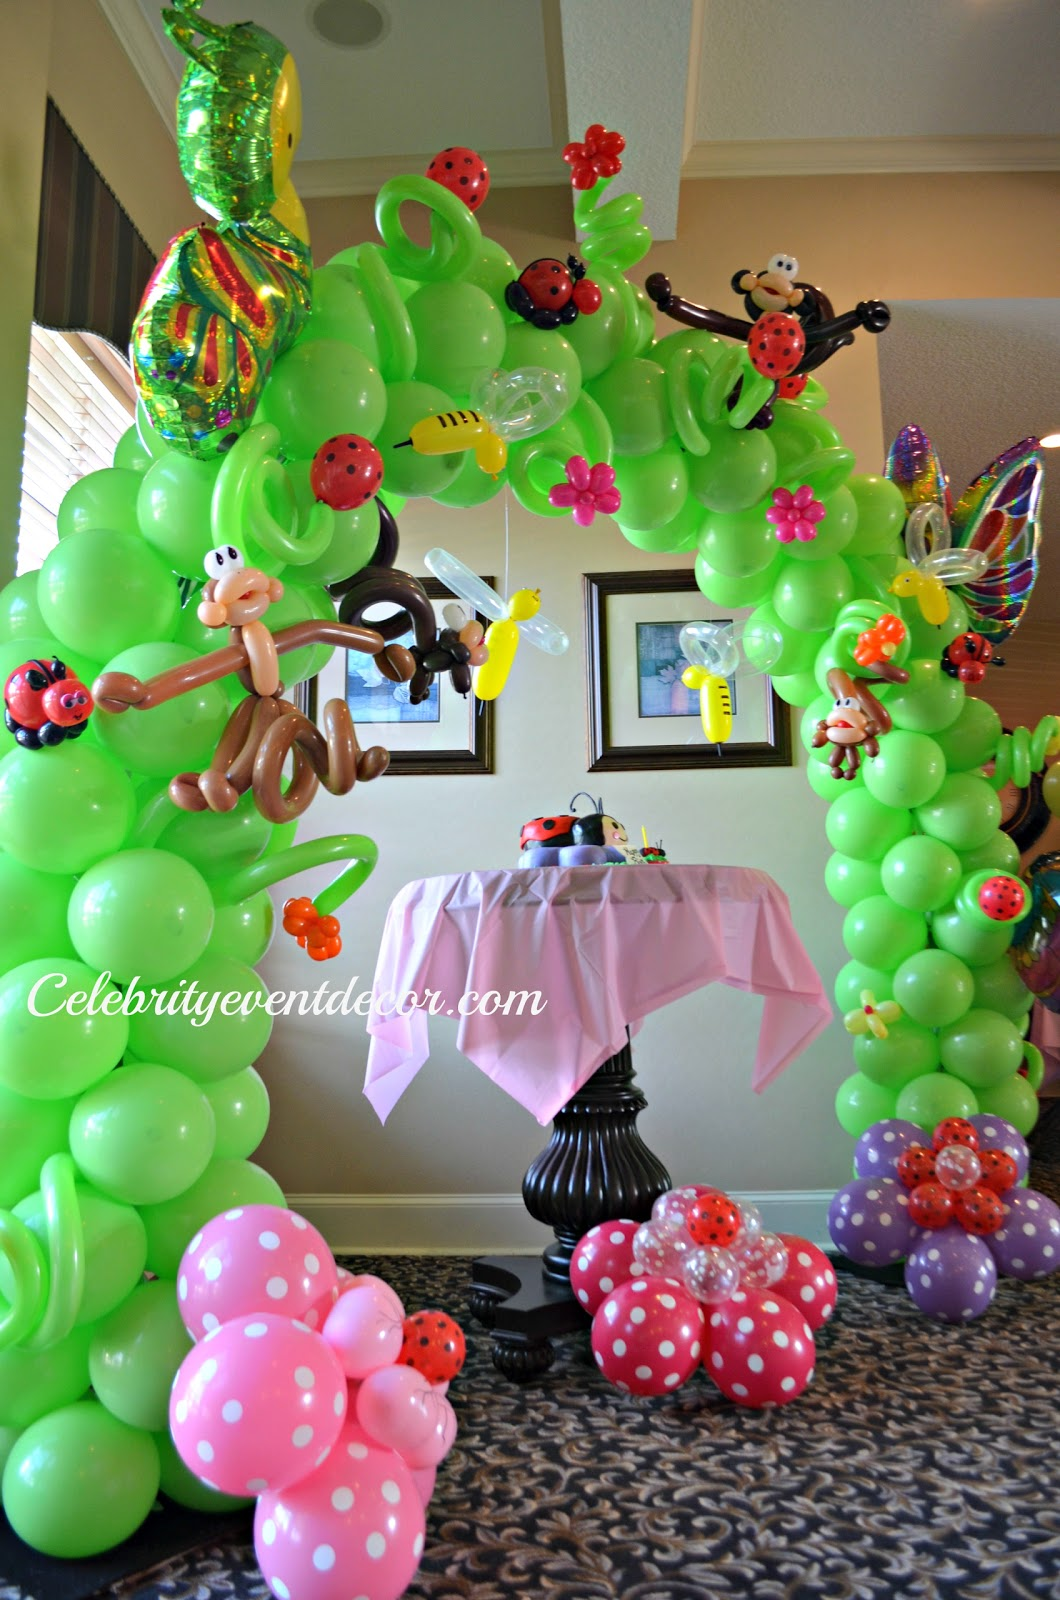 Celebrity event decor banquet hall llc for 1st birthday balloon decoration images